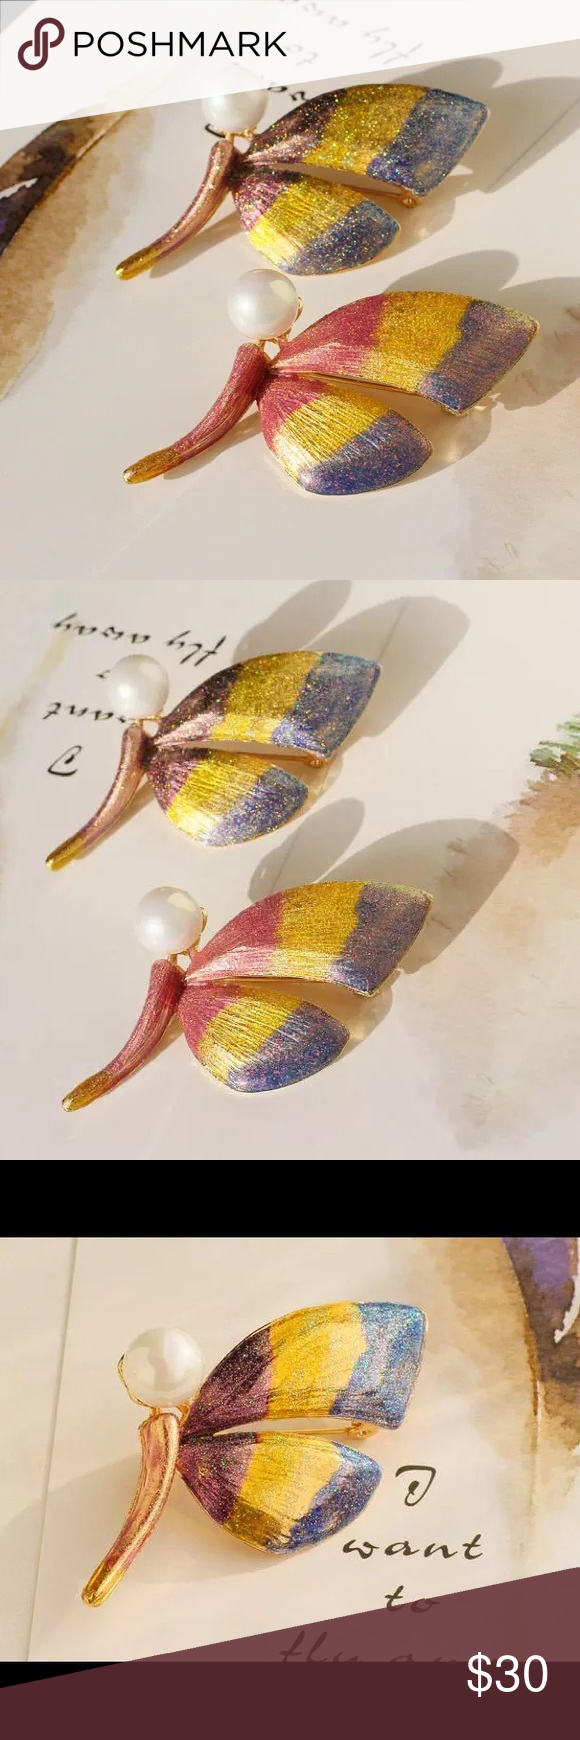 """🌸SPRING SALE🌸Lotus butterfly enamel brooch Lotus butterfly 🦋 enamel brooch // beautiful enamel with pearl // simple and gorgeous // available in both colors // about 2""""H x 1.5"""" W Lotus by 17L Jewelry Brooches"""